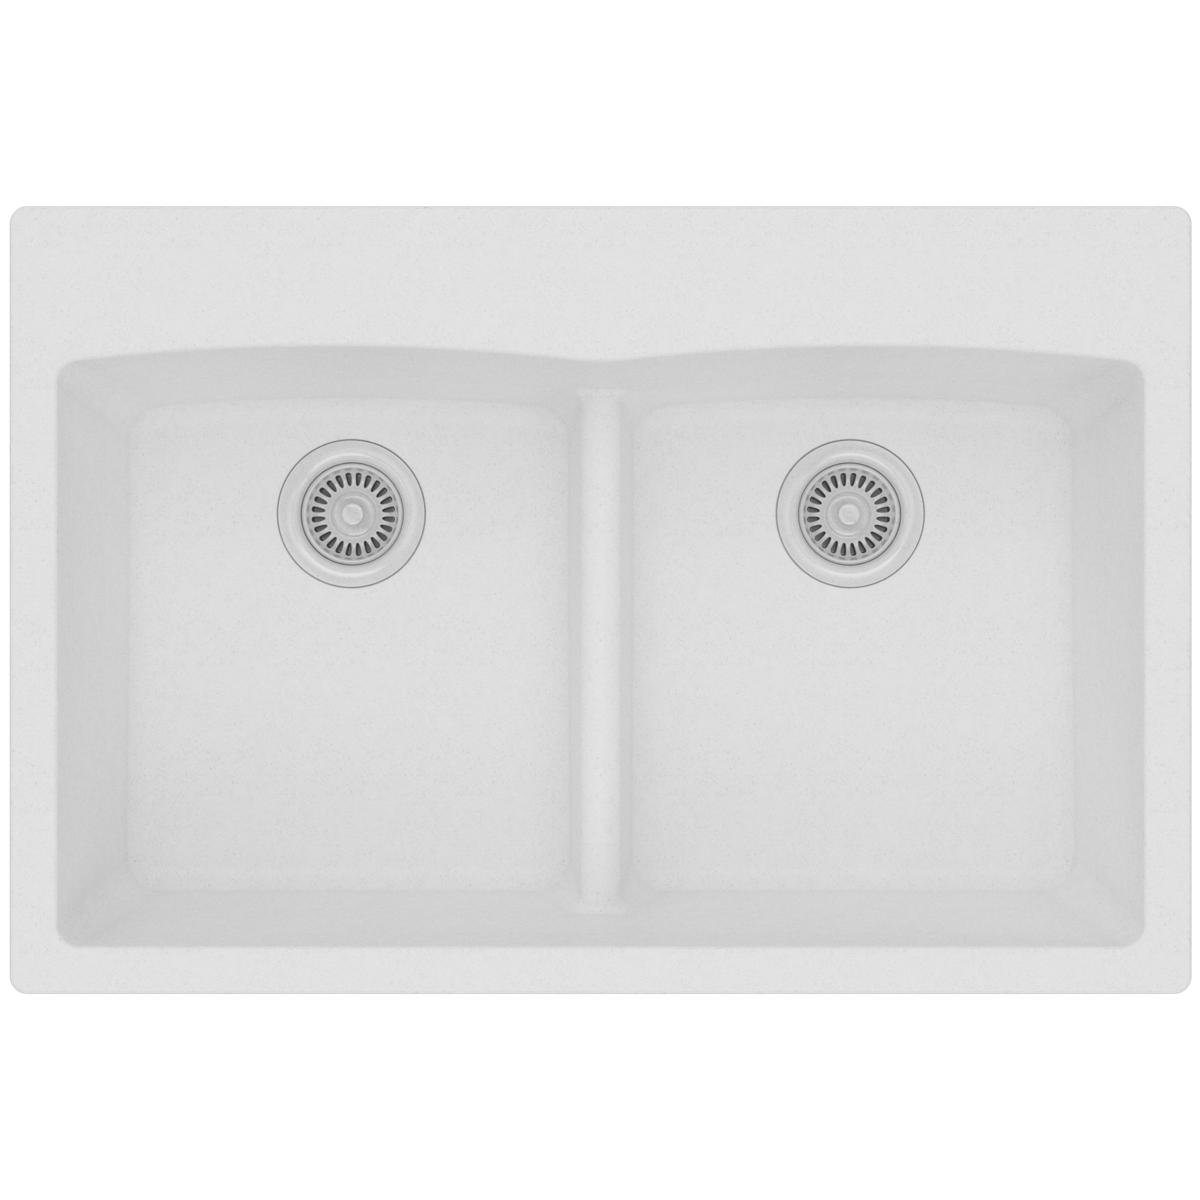 Elkay Quartz Classic ELGDLB3322WH0 White Equal Double Bowl Drop-In Sink with Aqua Divide